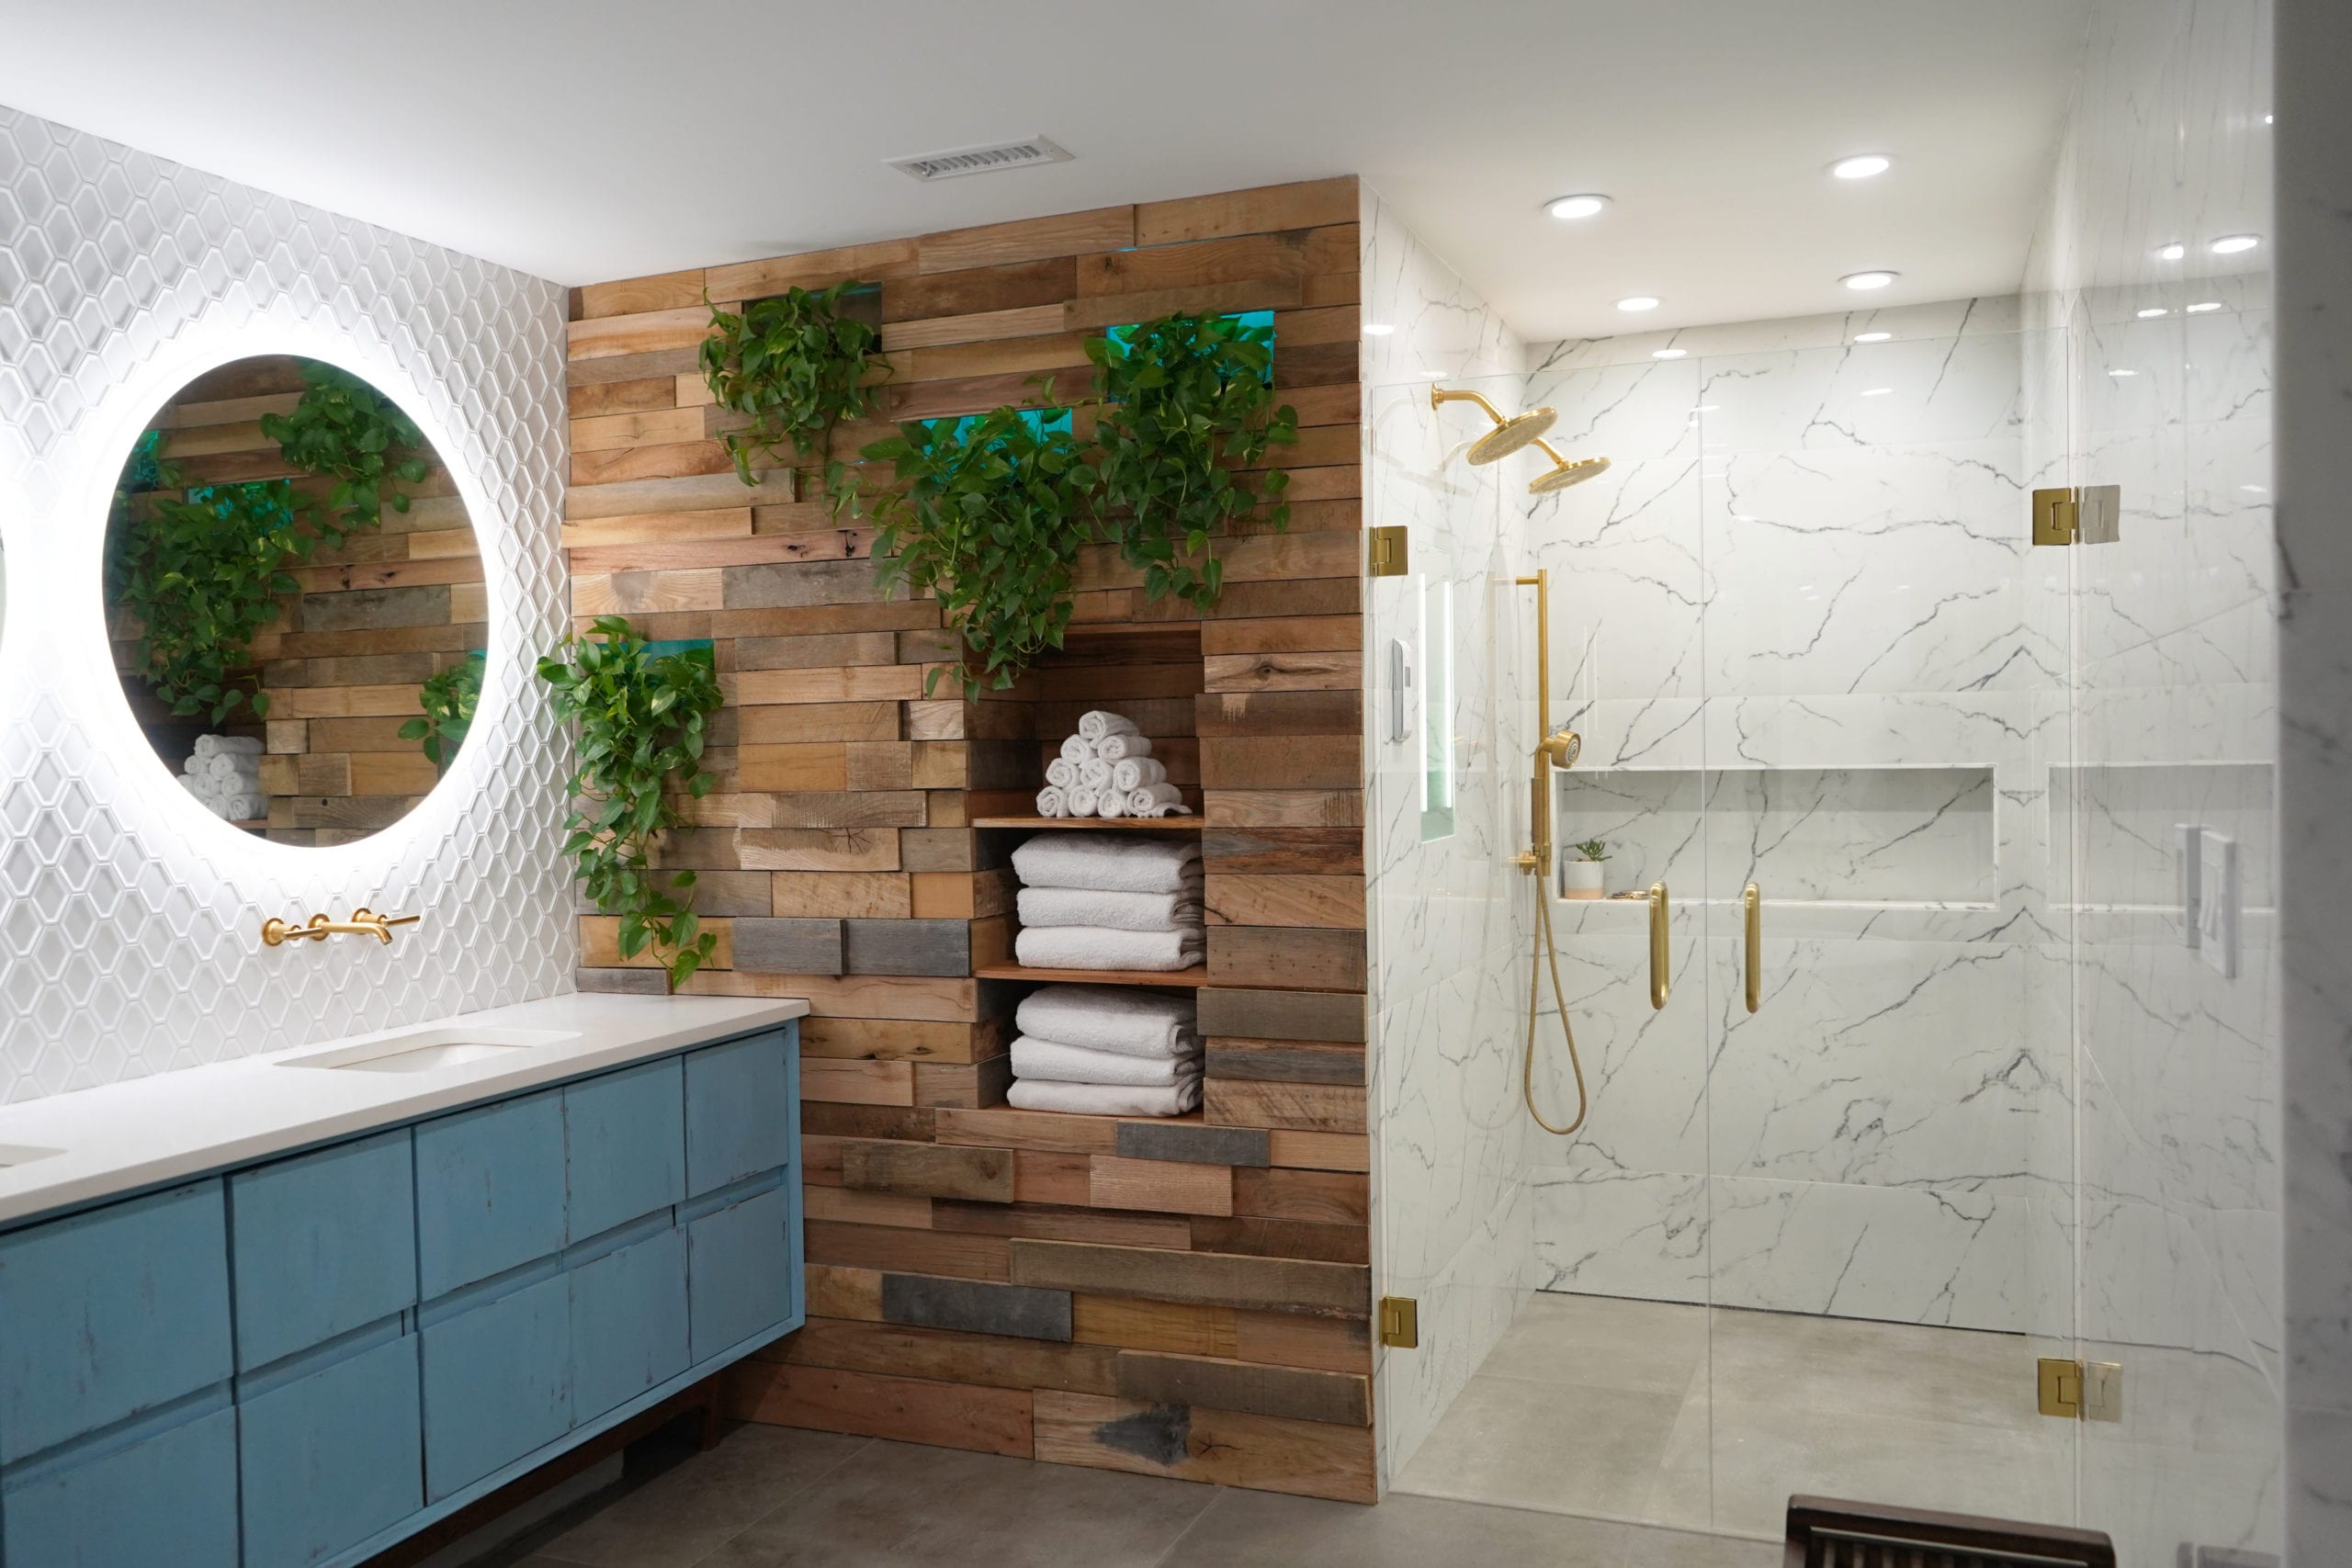 Bathroom Remodel Company in Atlanta with contemporary vanity, marble tile, walk in shower, gold shower, gold faucets, wood wall, white tile, round mirrors.